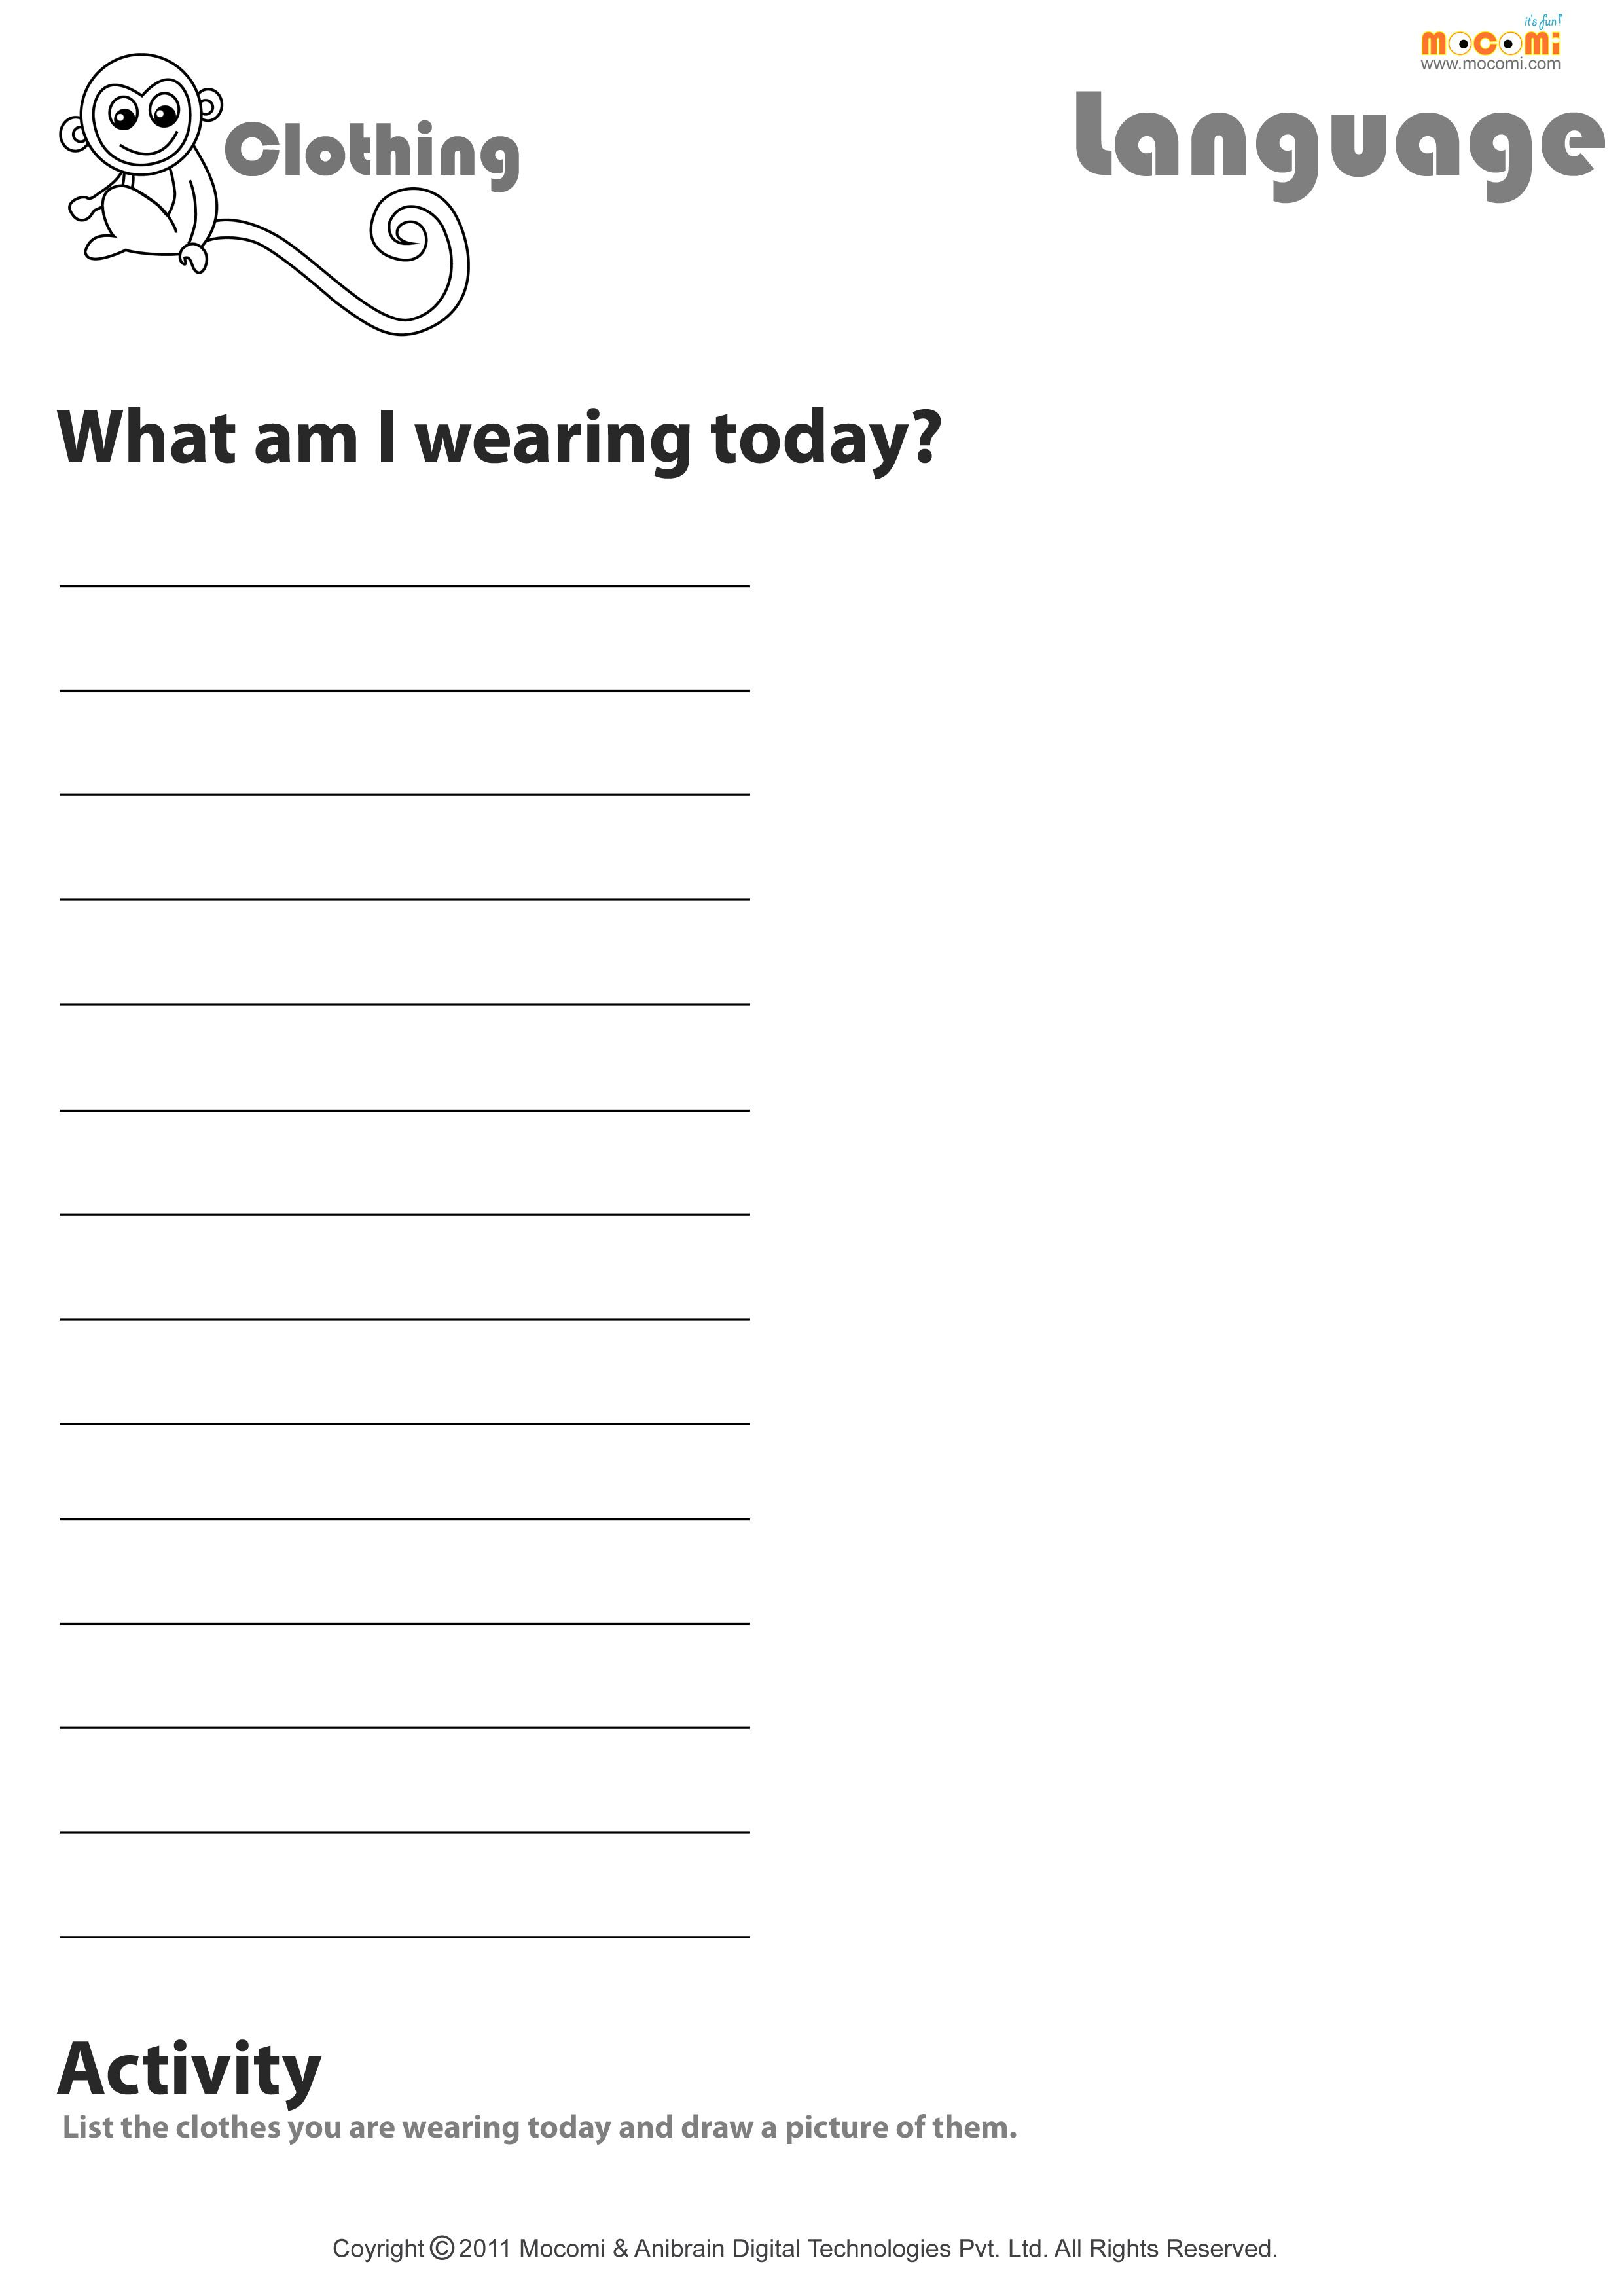 What Are You Wearing Today